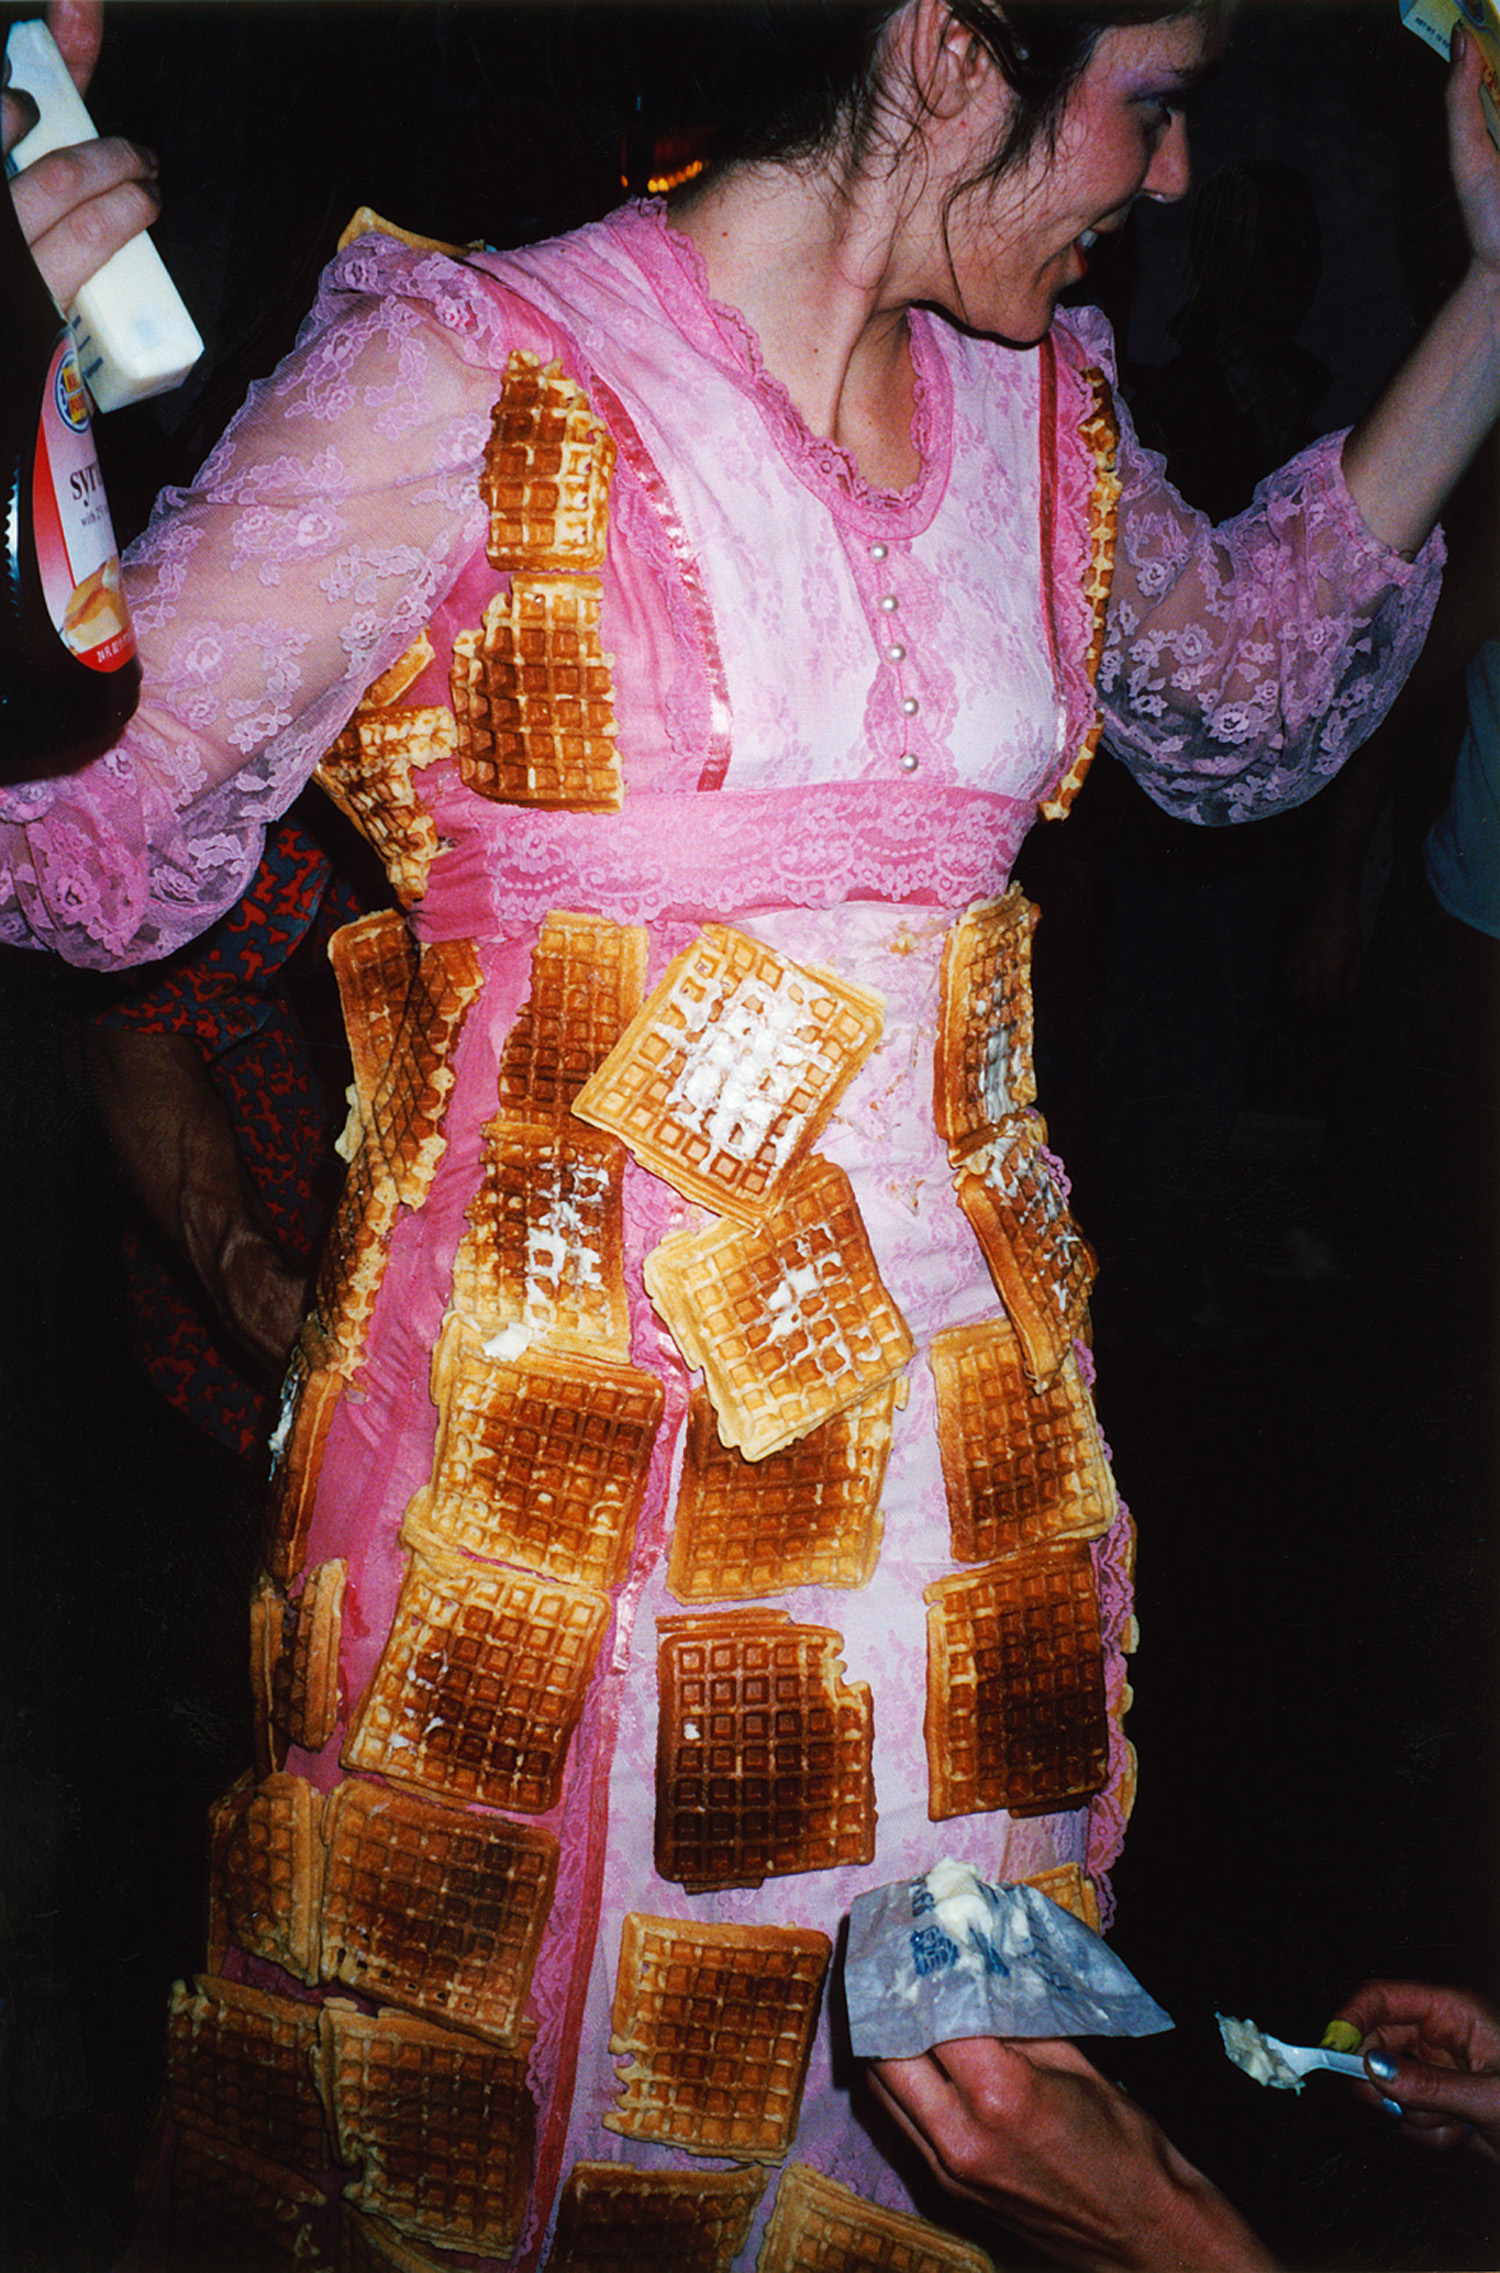 I made waffles, glued them to my dress and then had the audience butter and syrup me.